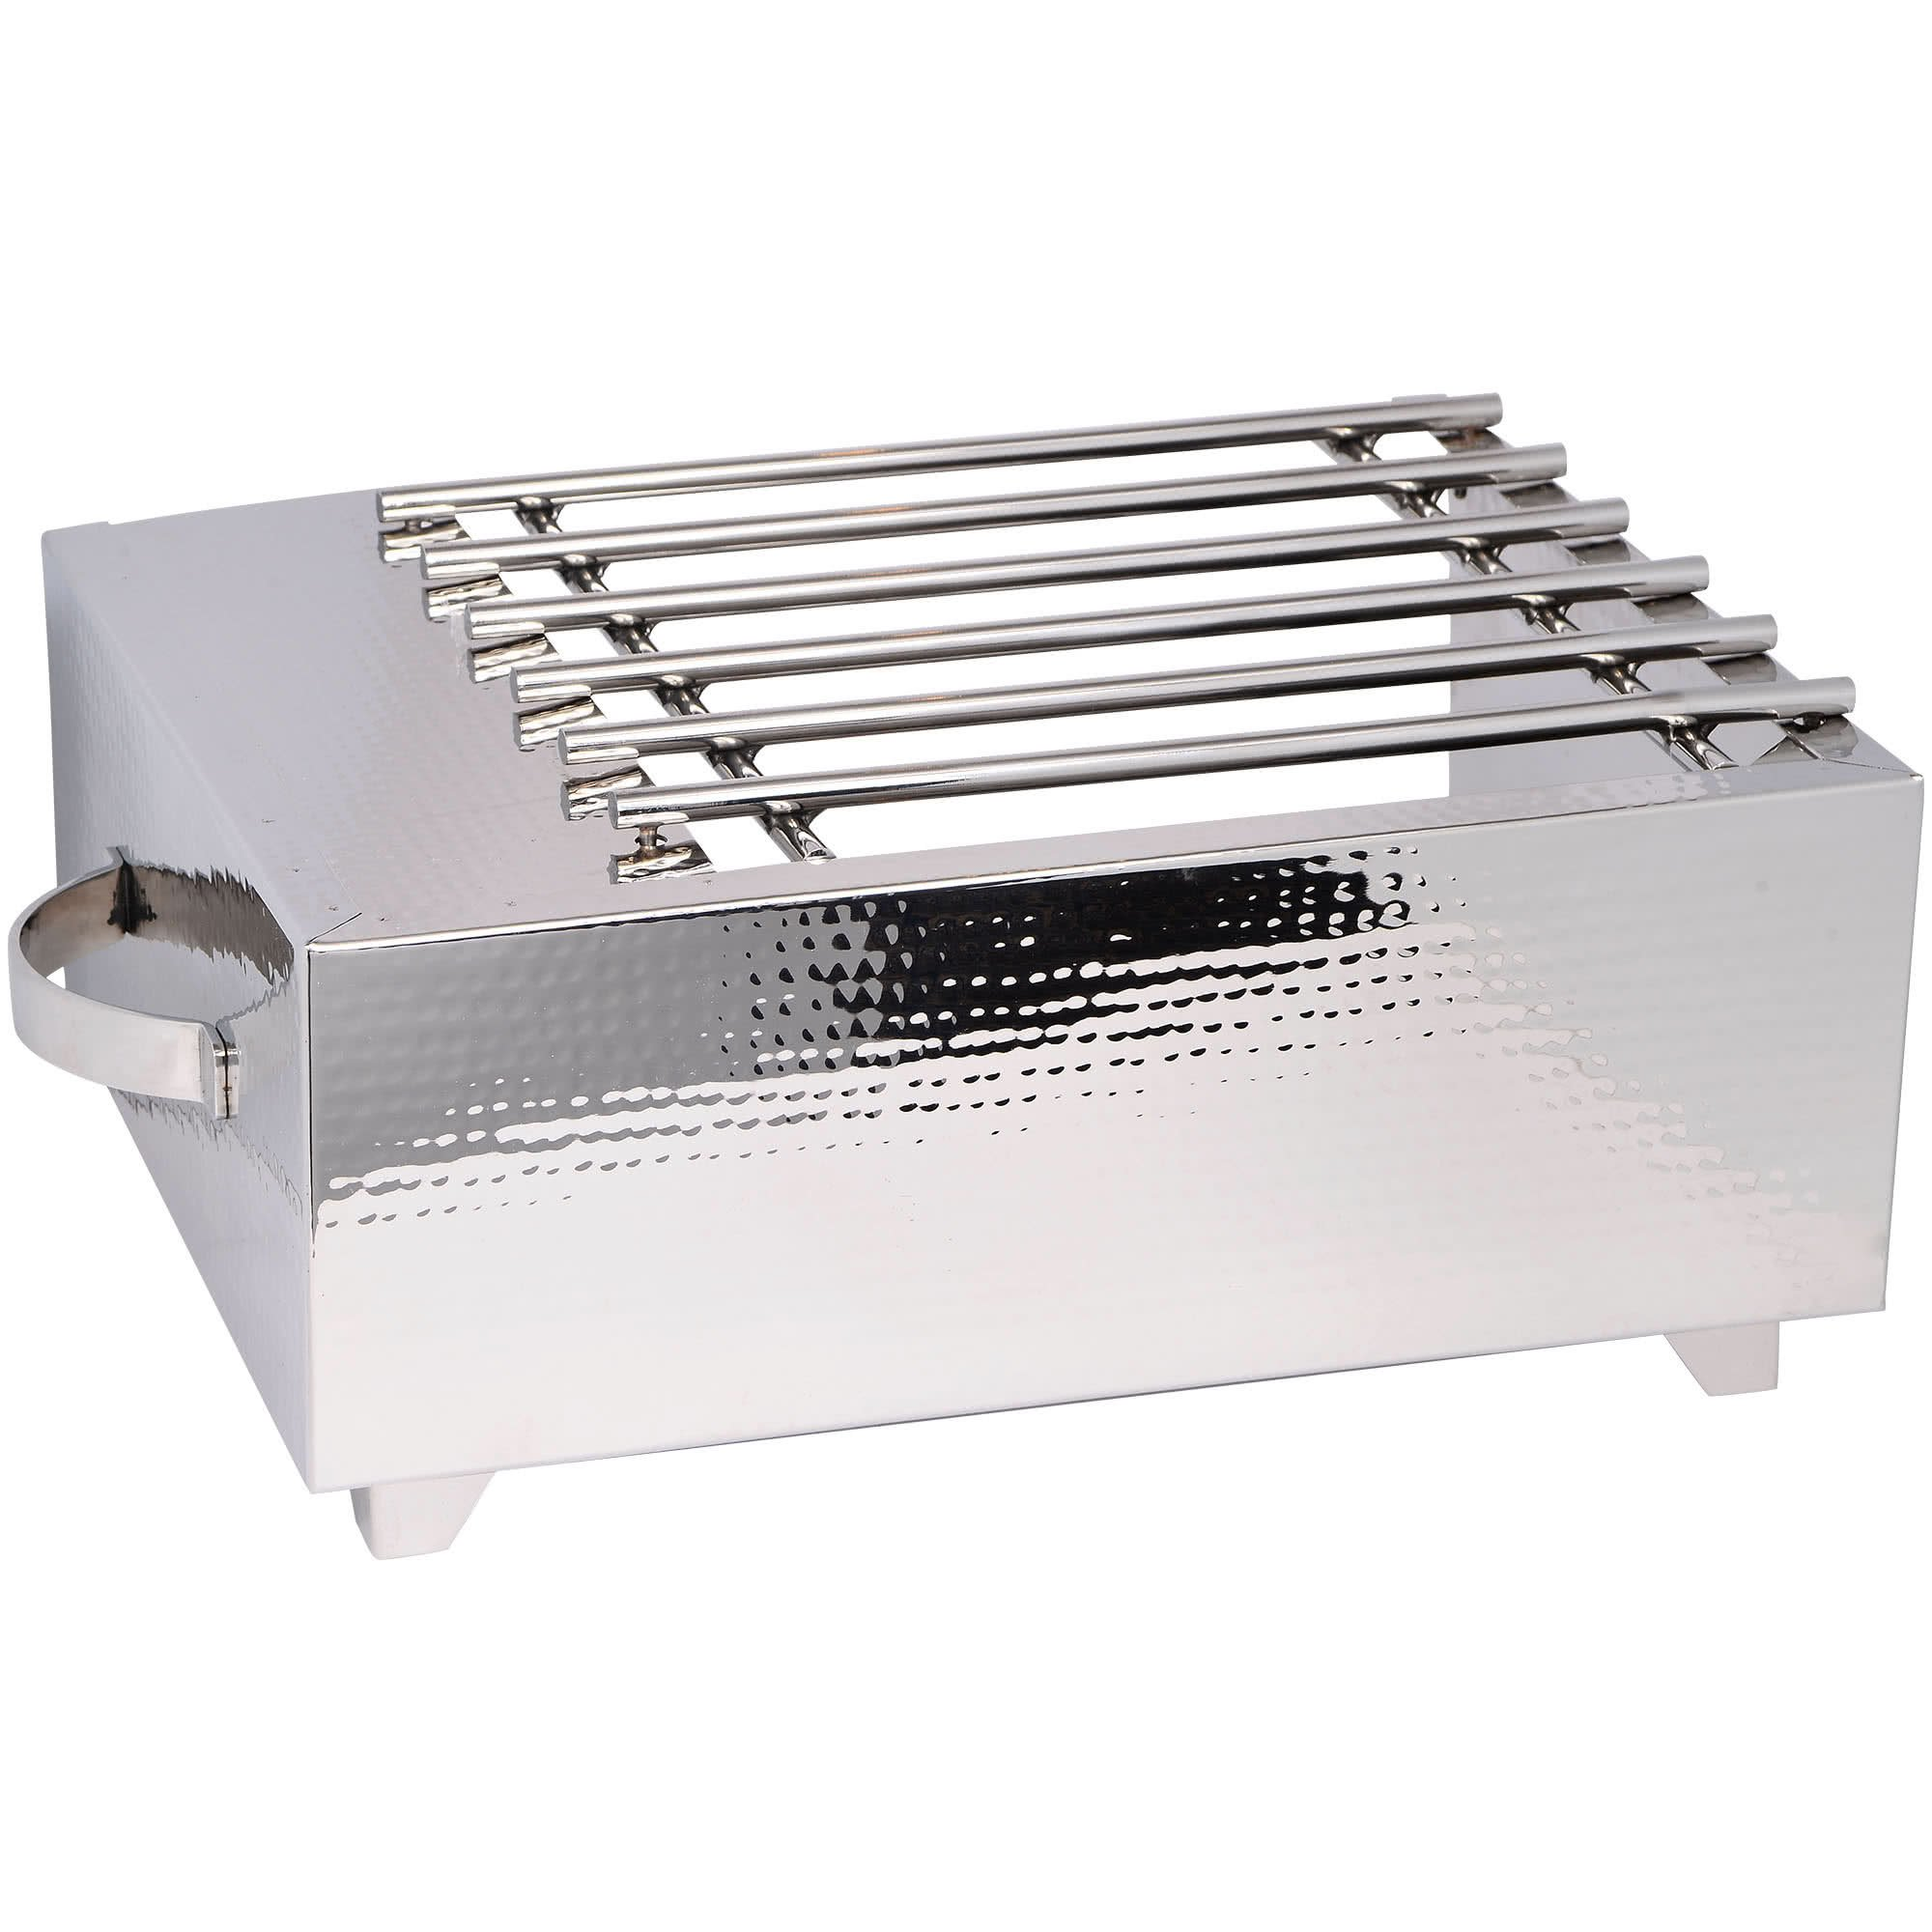 TableTop king 3264HG Hammered Stainless Steel Single Butane Stove Cover-Up by TableTop King